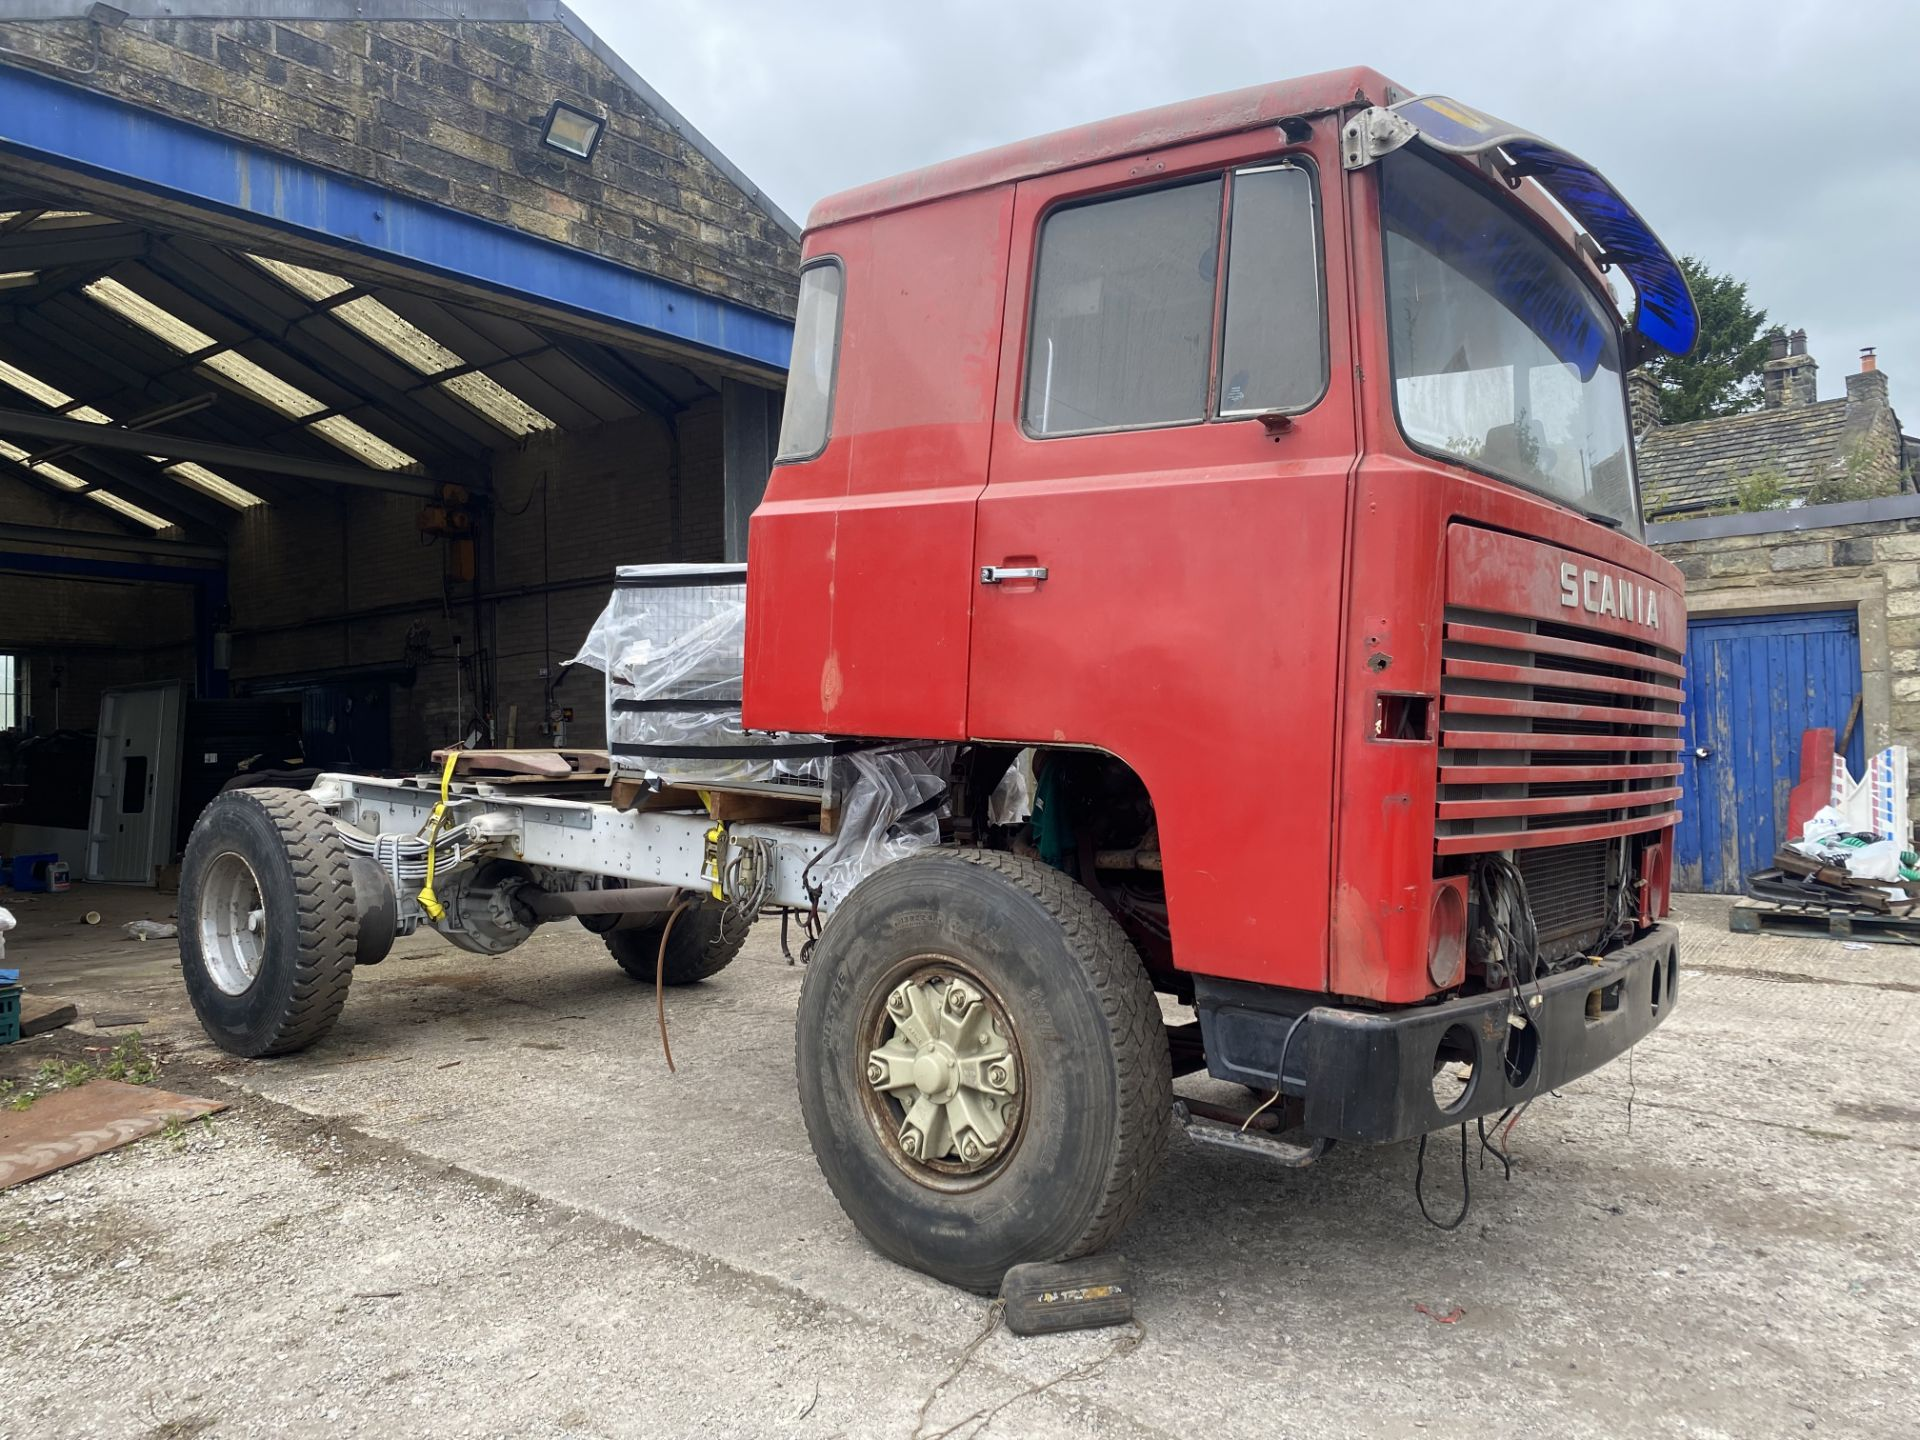 Scania 141 3.8M 4X2 TRACTOR UNIT, 1979, left hand drive, 3.8m wheelbase, 16,700kg gross weight, with - Image 2 of 18